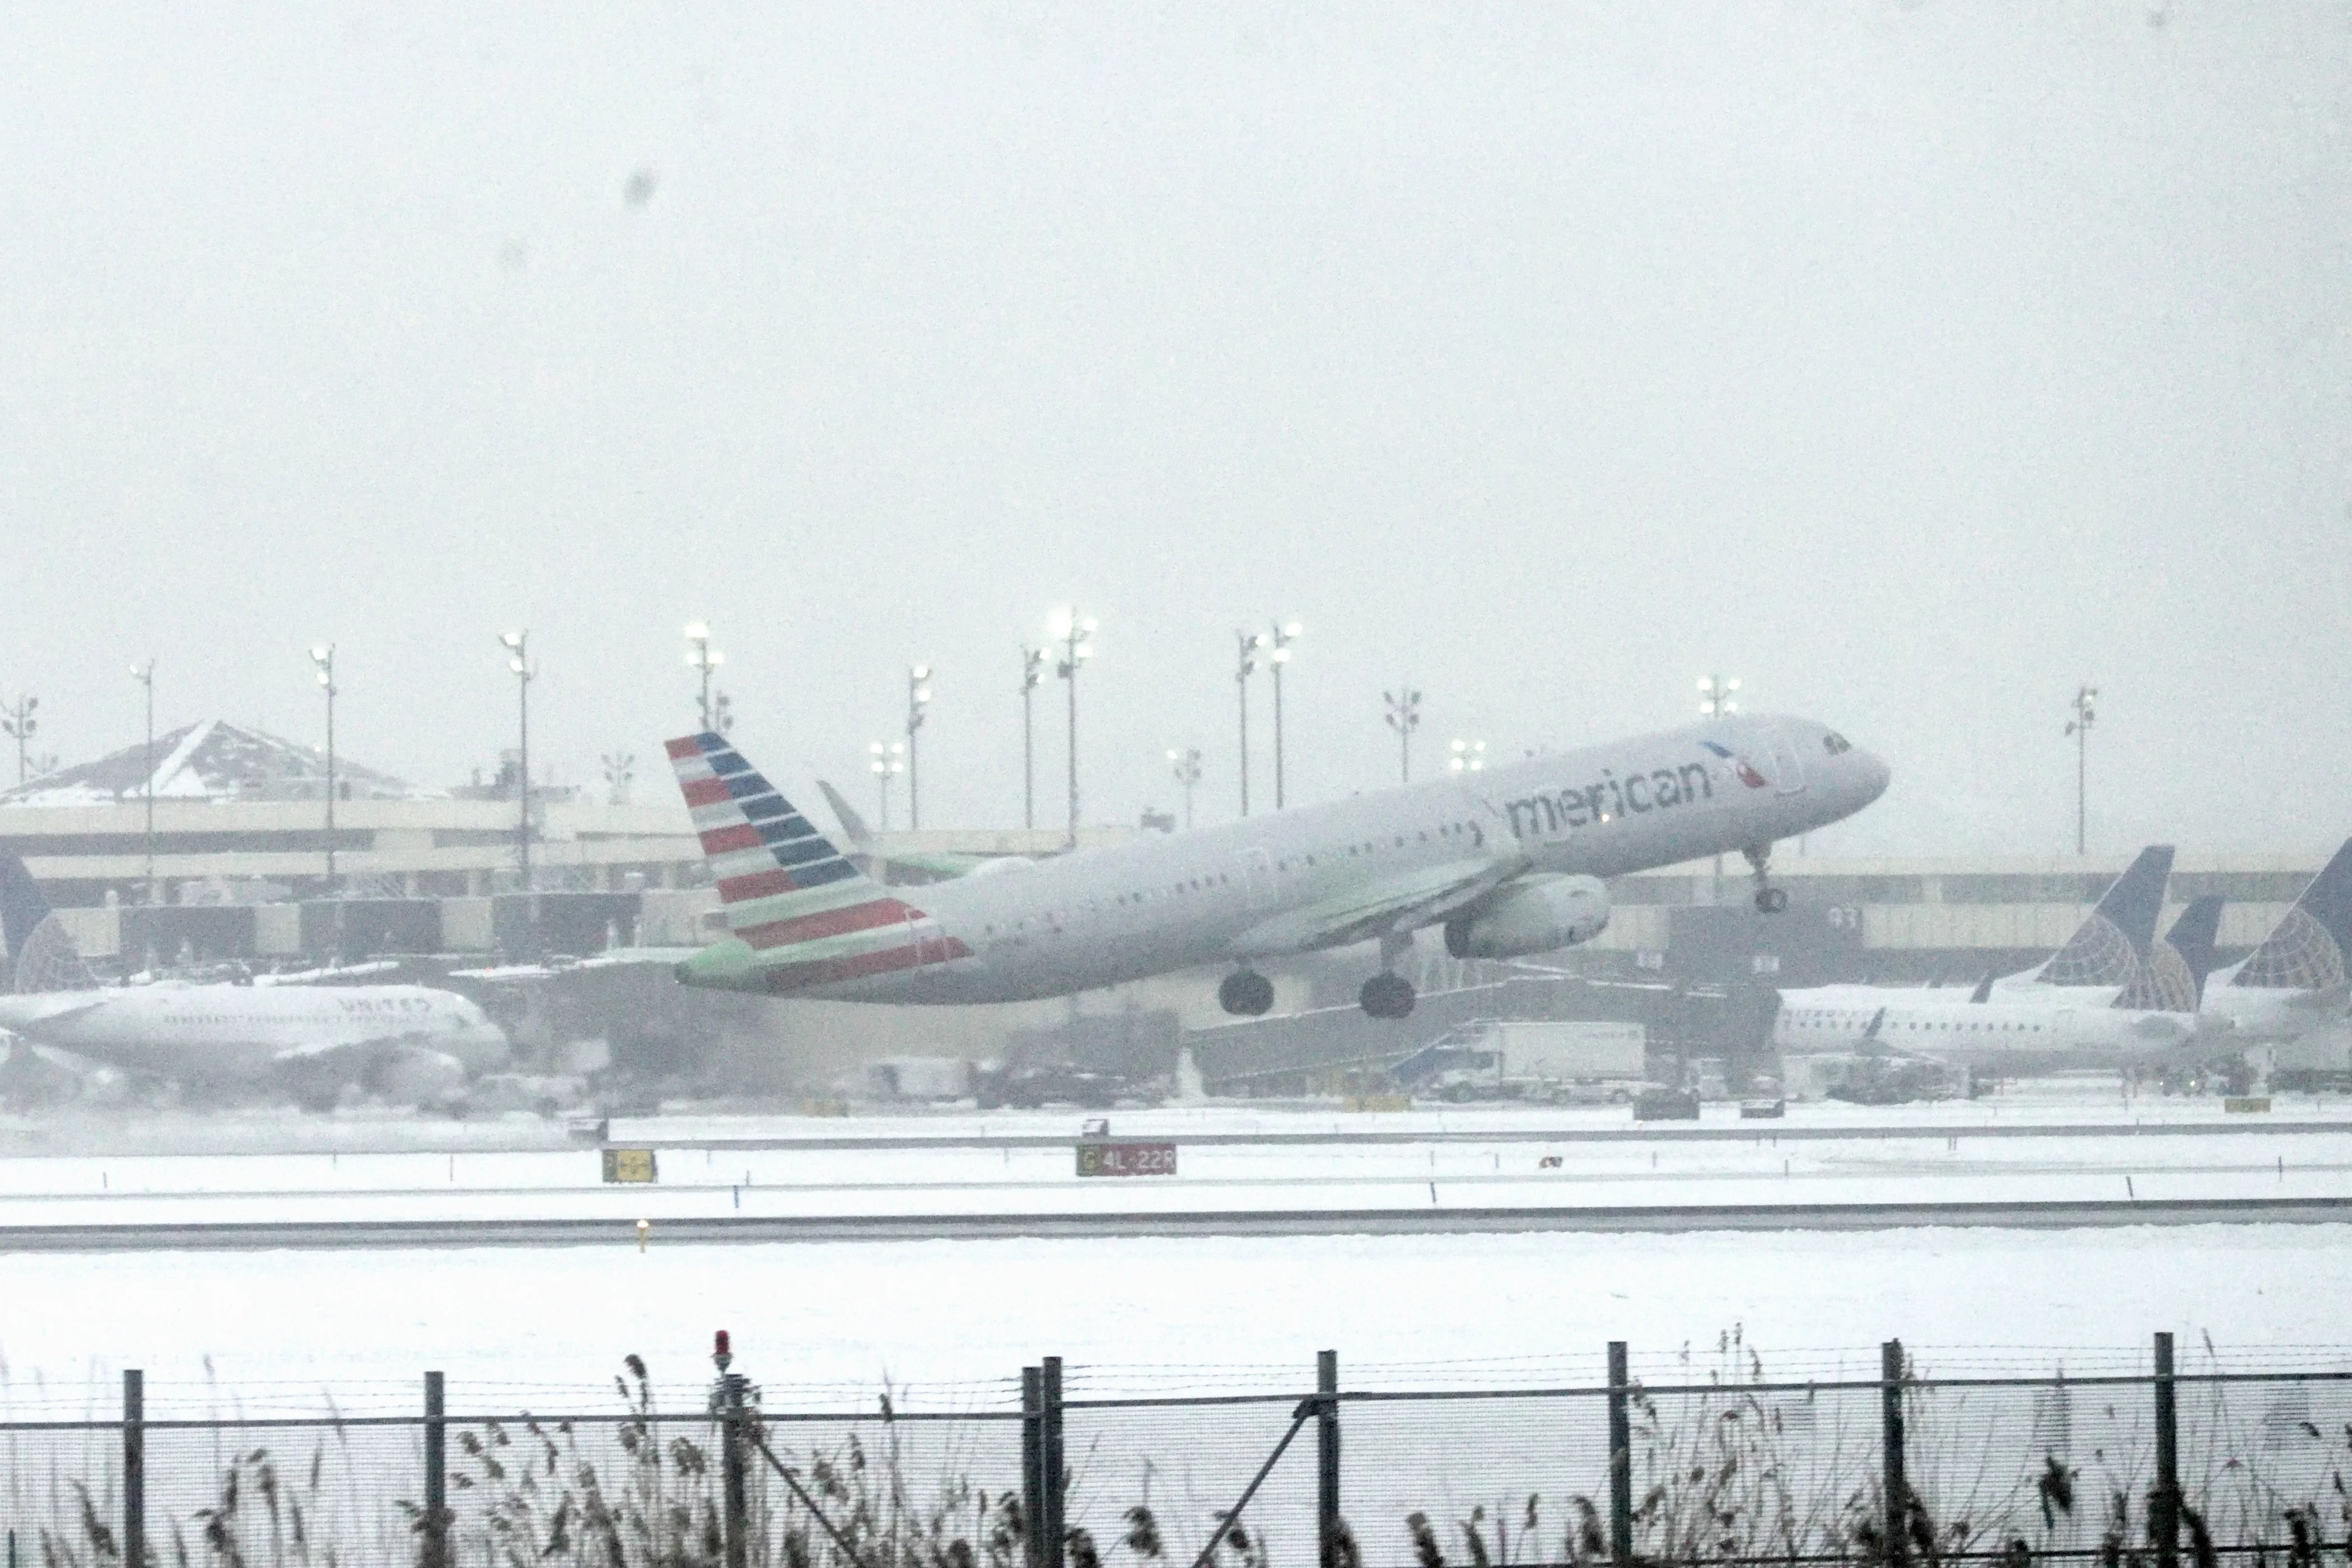 These are the busiest days for Christmas and New Year's travel